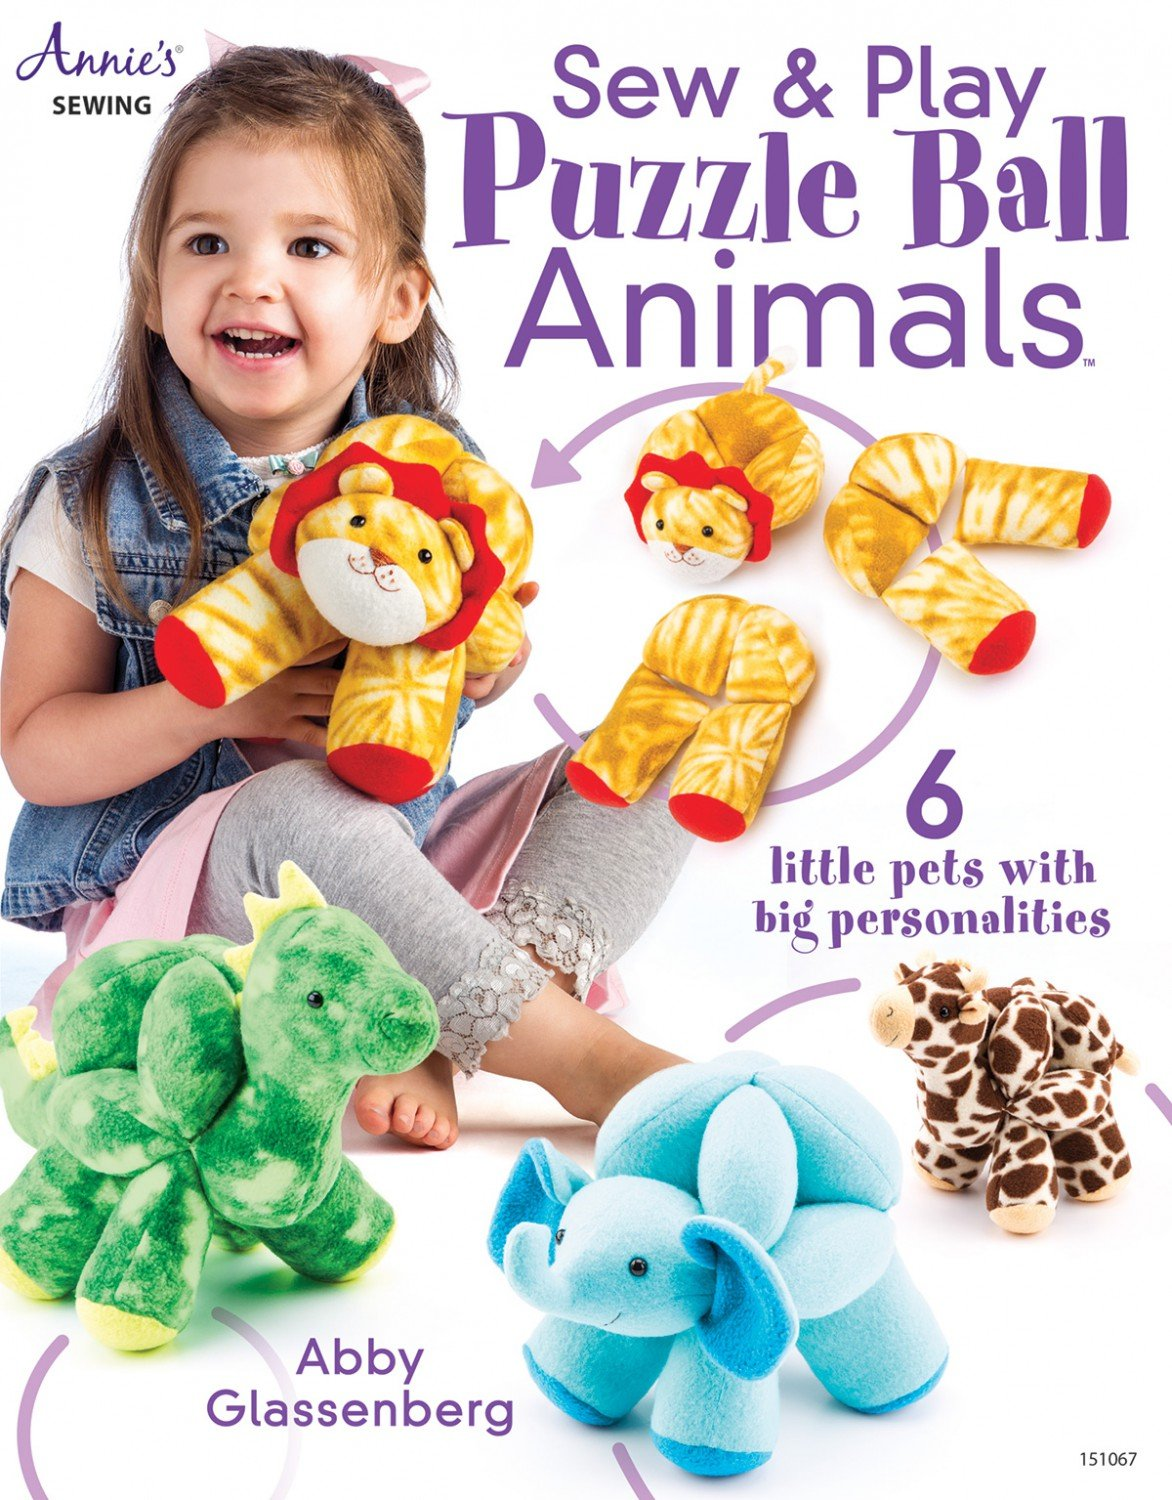 Sew & Play Puzzle Ball Animals - 151067 - MAY BE RESTOCKED UPON REQUEST